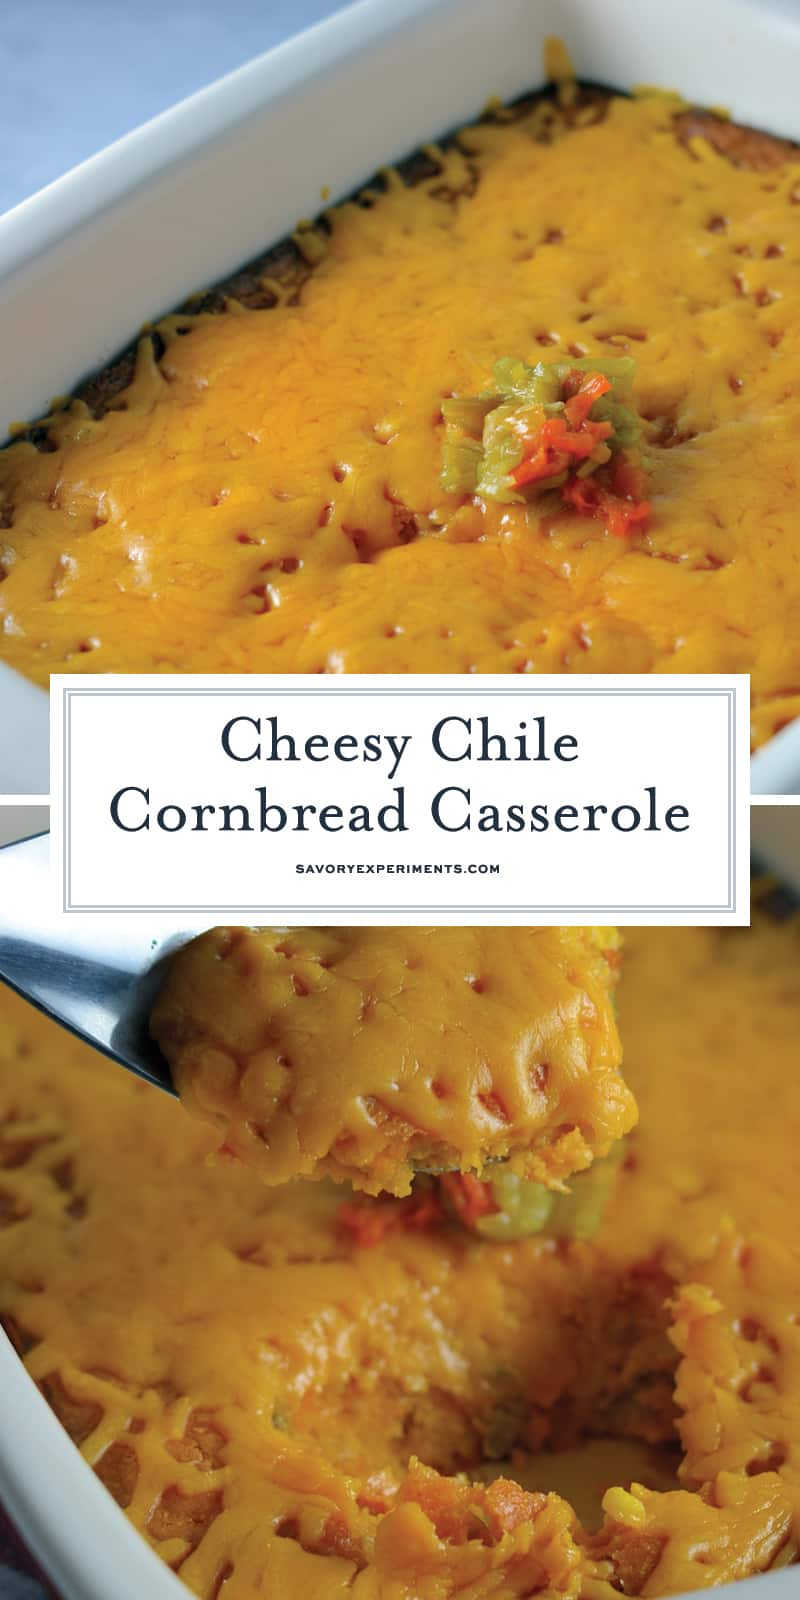 Cheesy Chile Cornbread Casserole pairs the sweetness of cornbread with the subtle heat of hatch chiles and chile powder for an incredible side dish.  #cornbread #hatchchiles #casserole www.savoryexperiments.com